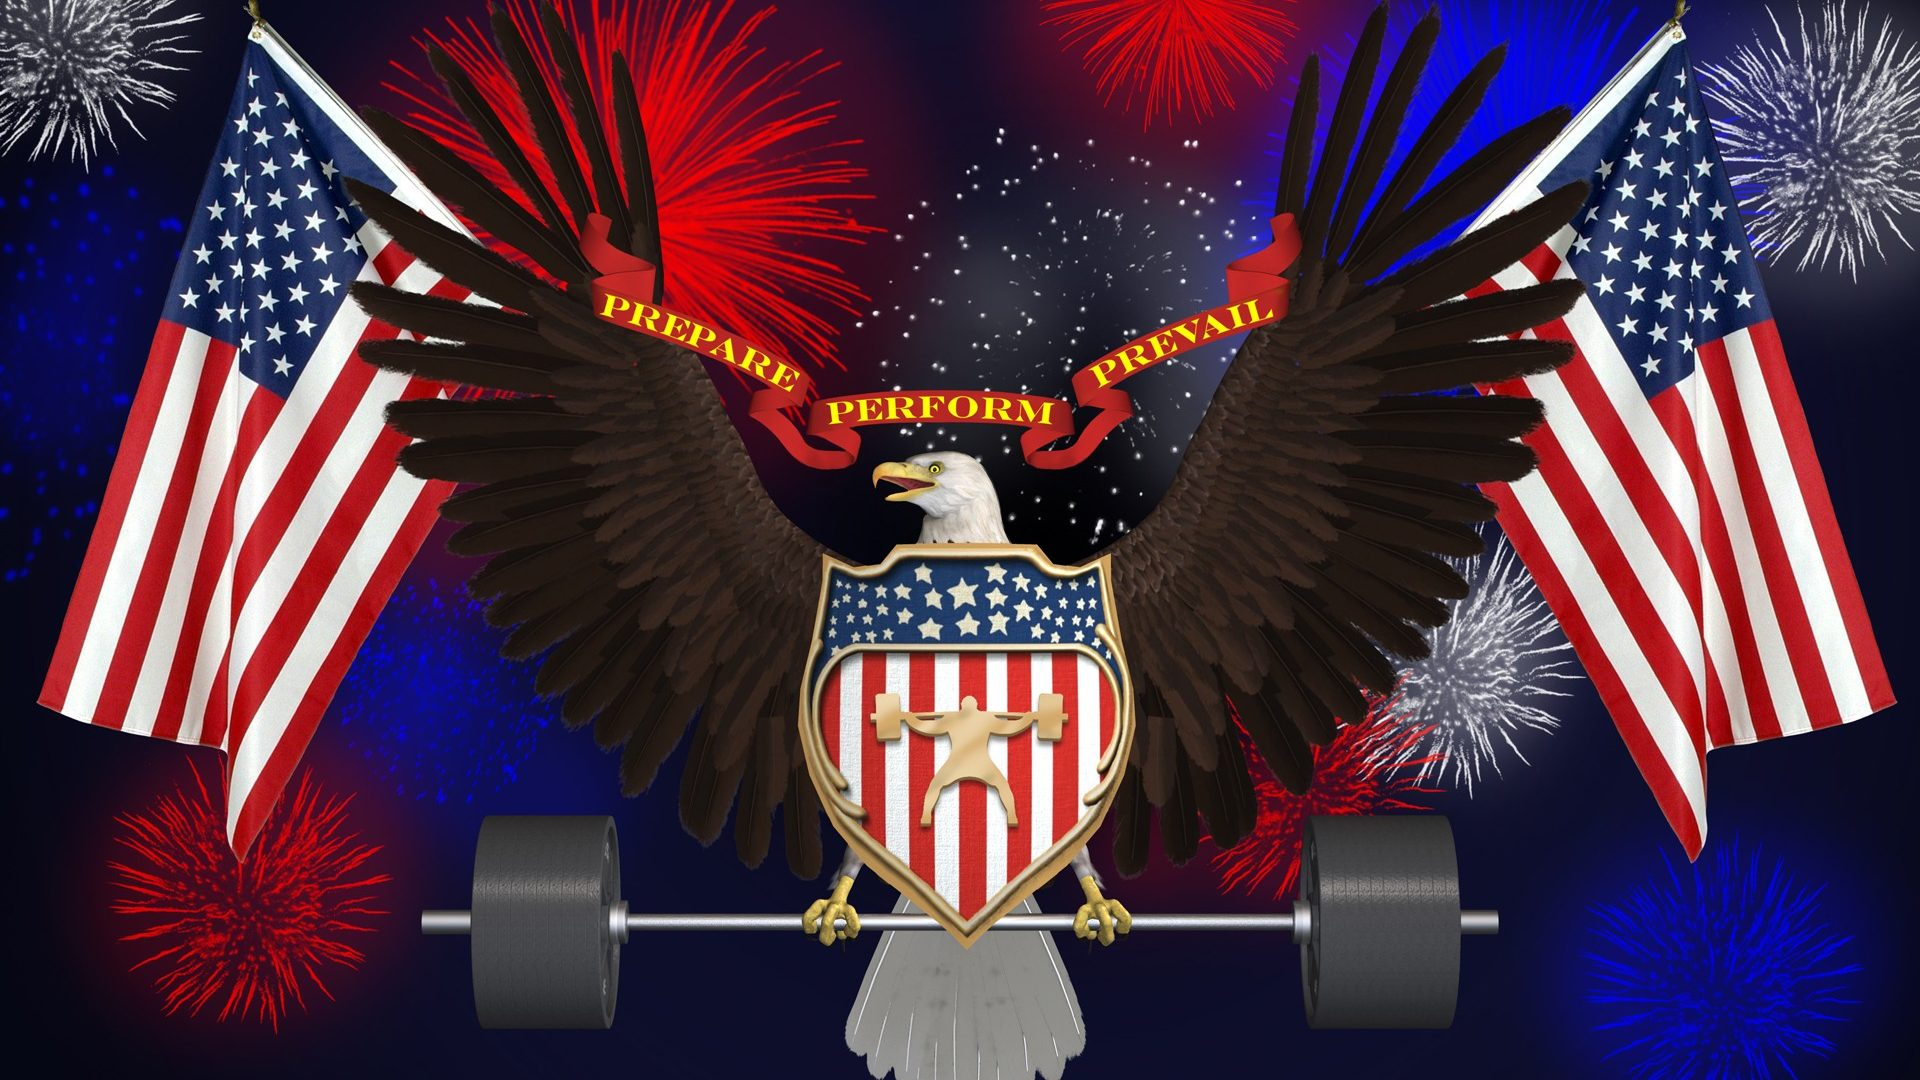 Weight Lifting Wallpaper Iphone American Eagle And Flag Images July Usa Fireworks Memorial